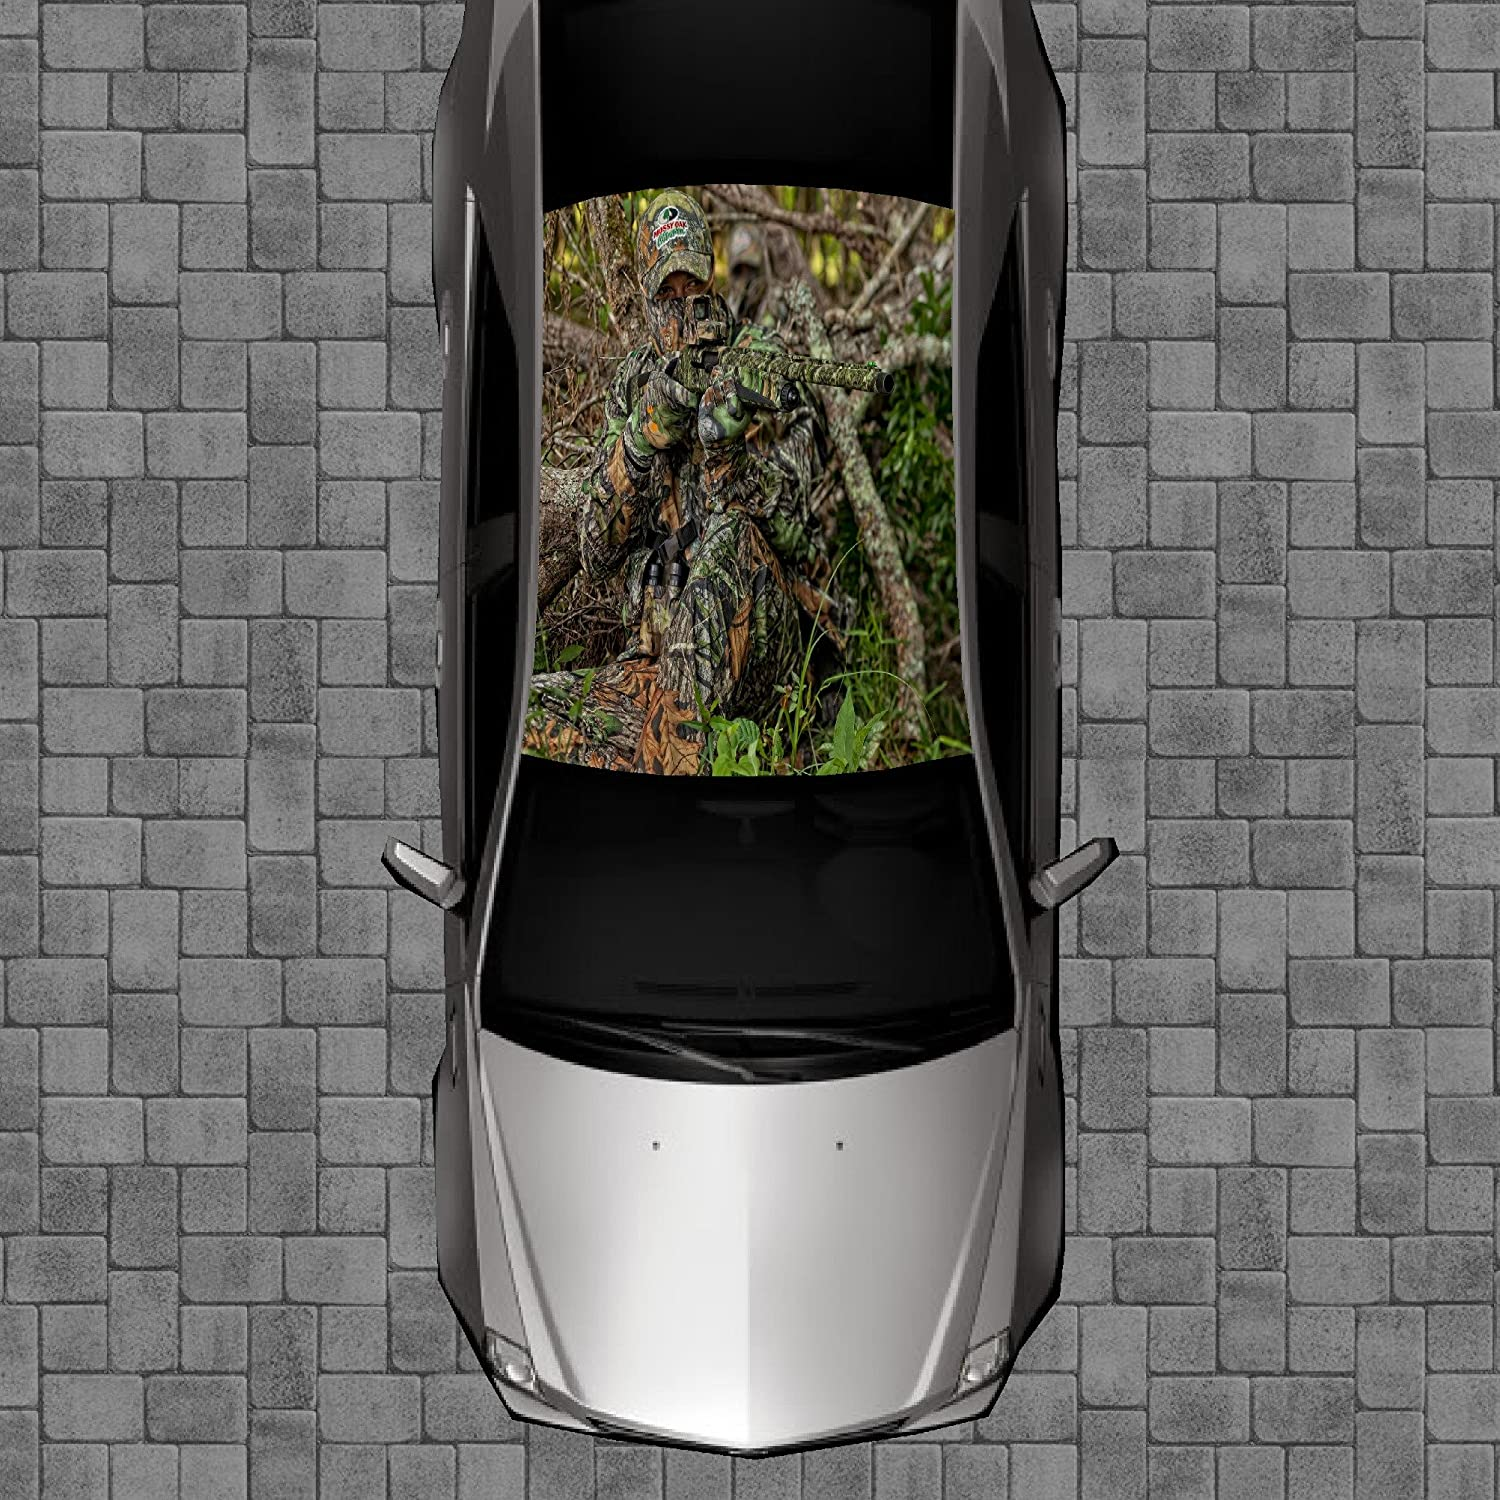 Sign Factory R83 CAMO Deer Hunting - Roof Wrap Decal Some reservation Decals Max 80% OFF